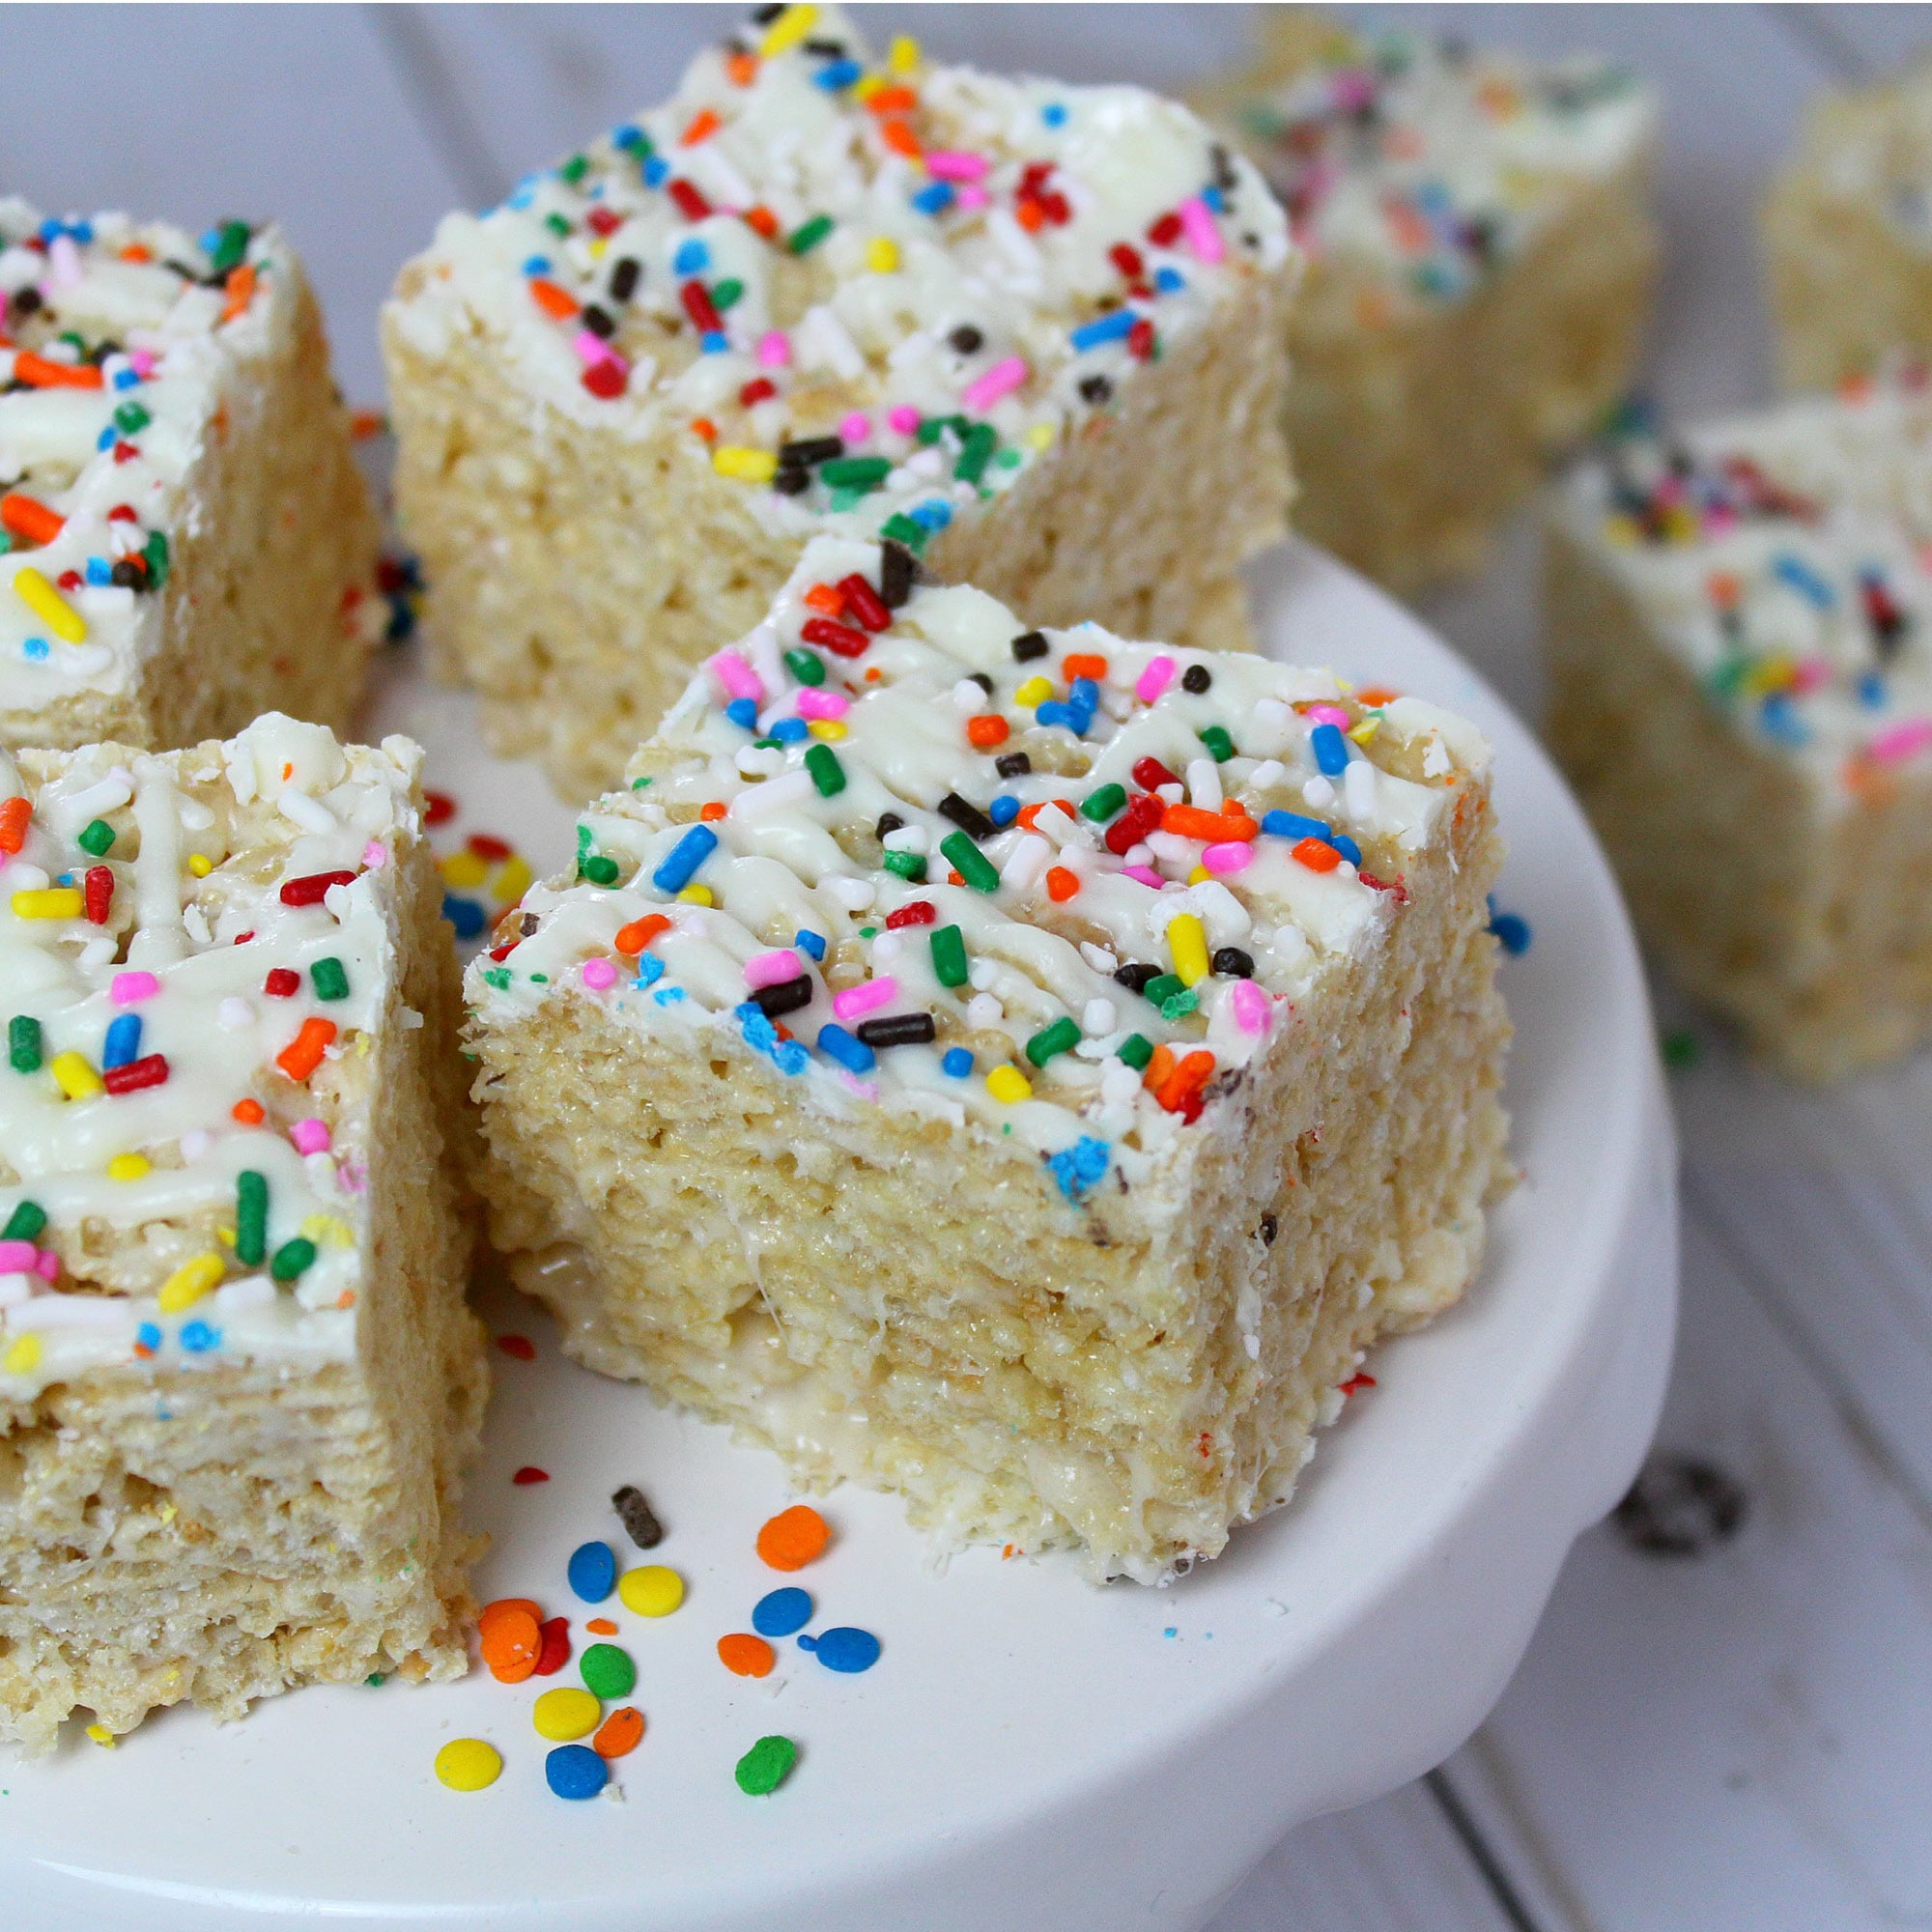 Got 20 minutes? Satisfy your sweet tooth fast with these unbelievably yummy white chocolate rice crispy treats! They are so good it is almost hard to believe that take only 4 ingredients!